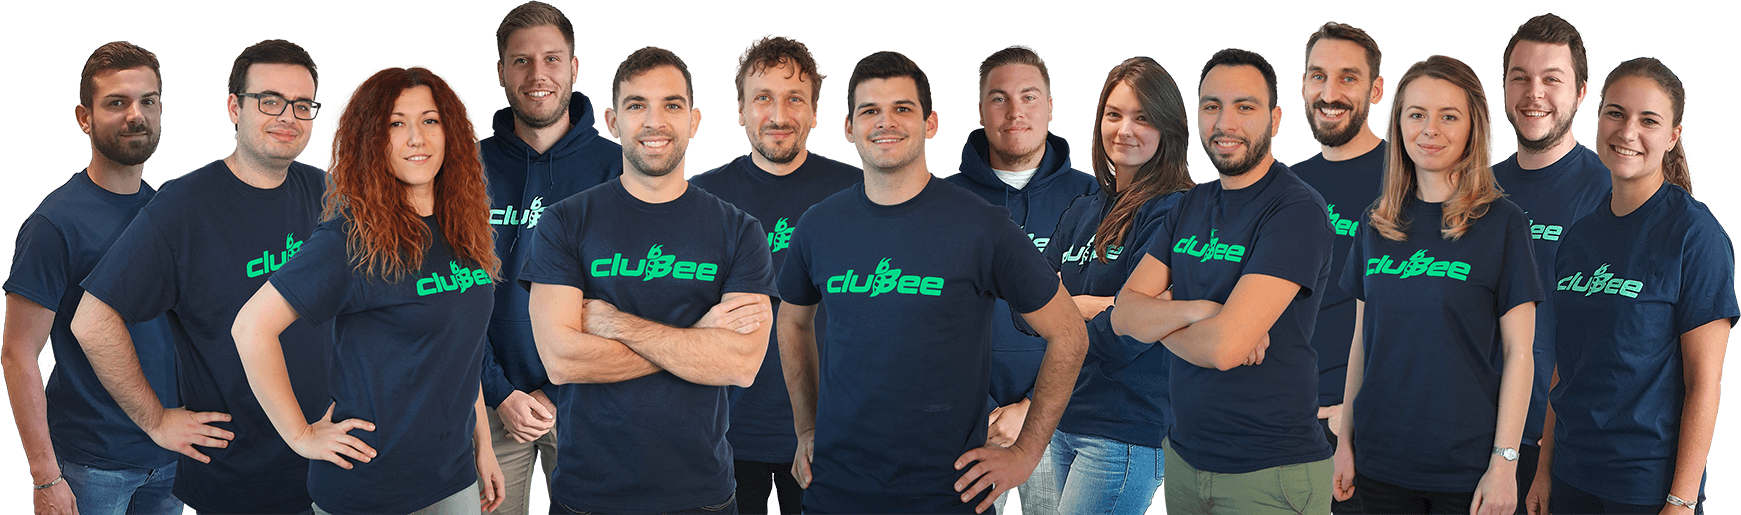 Clubee team photo